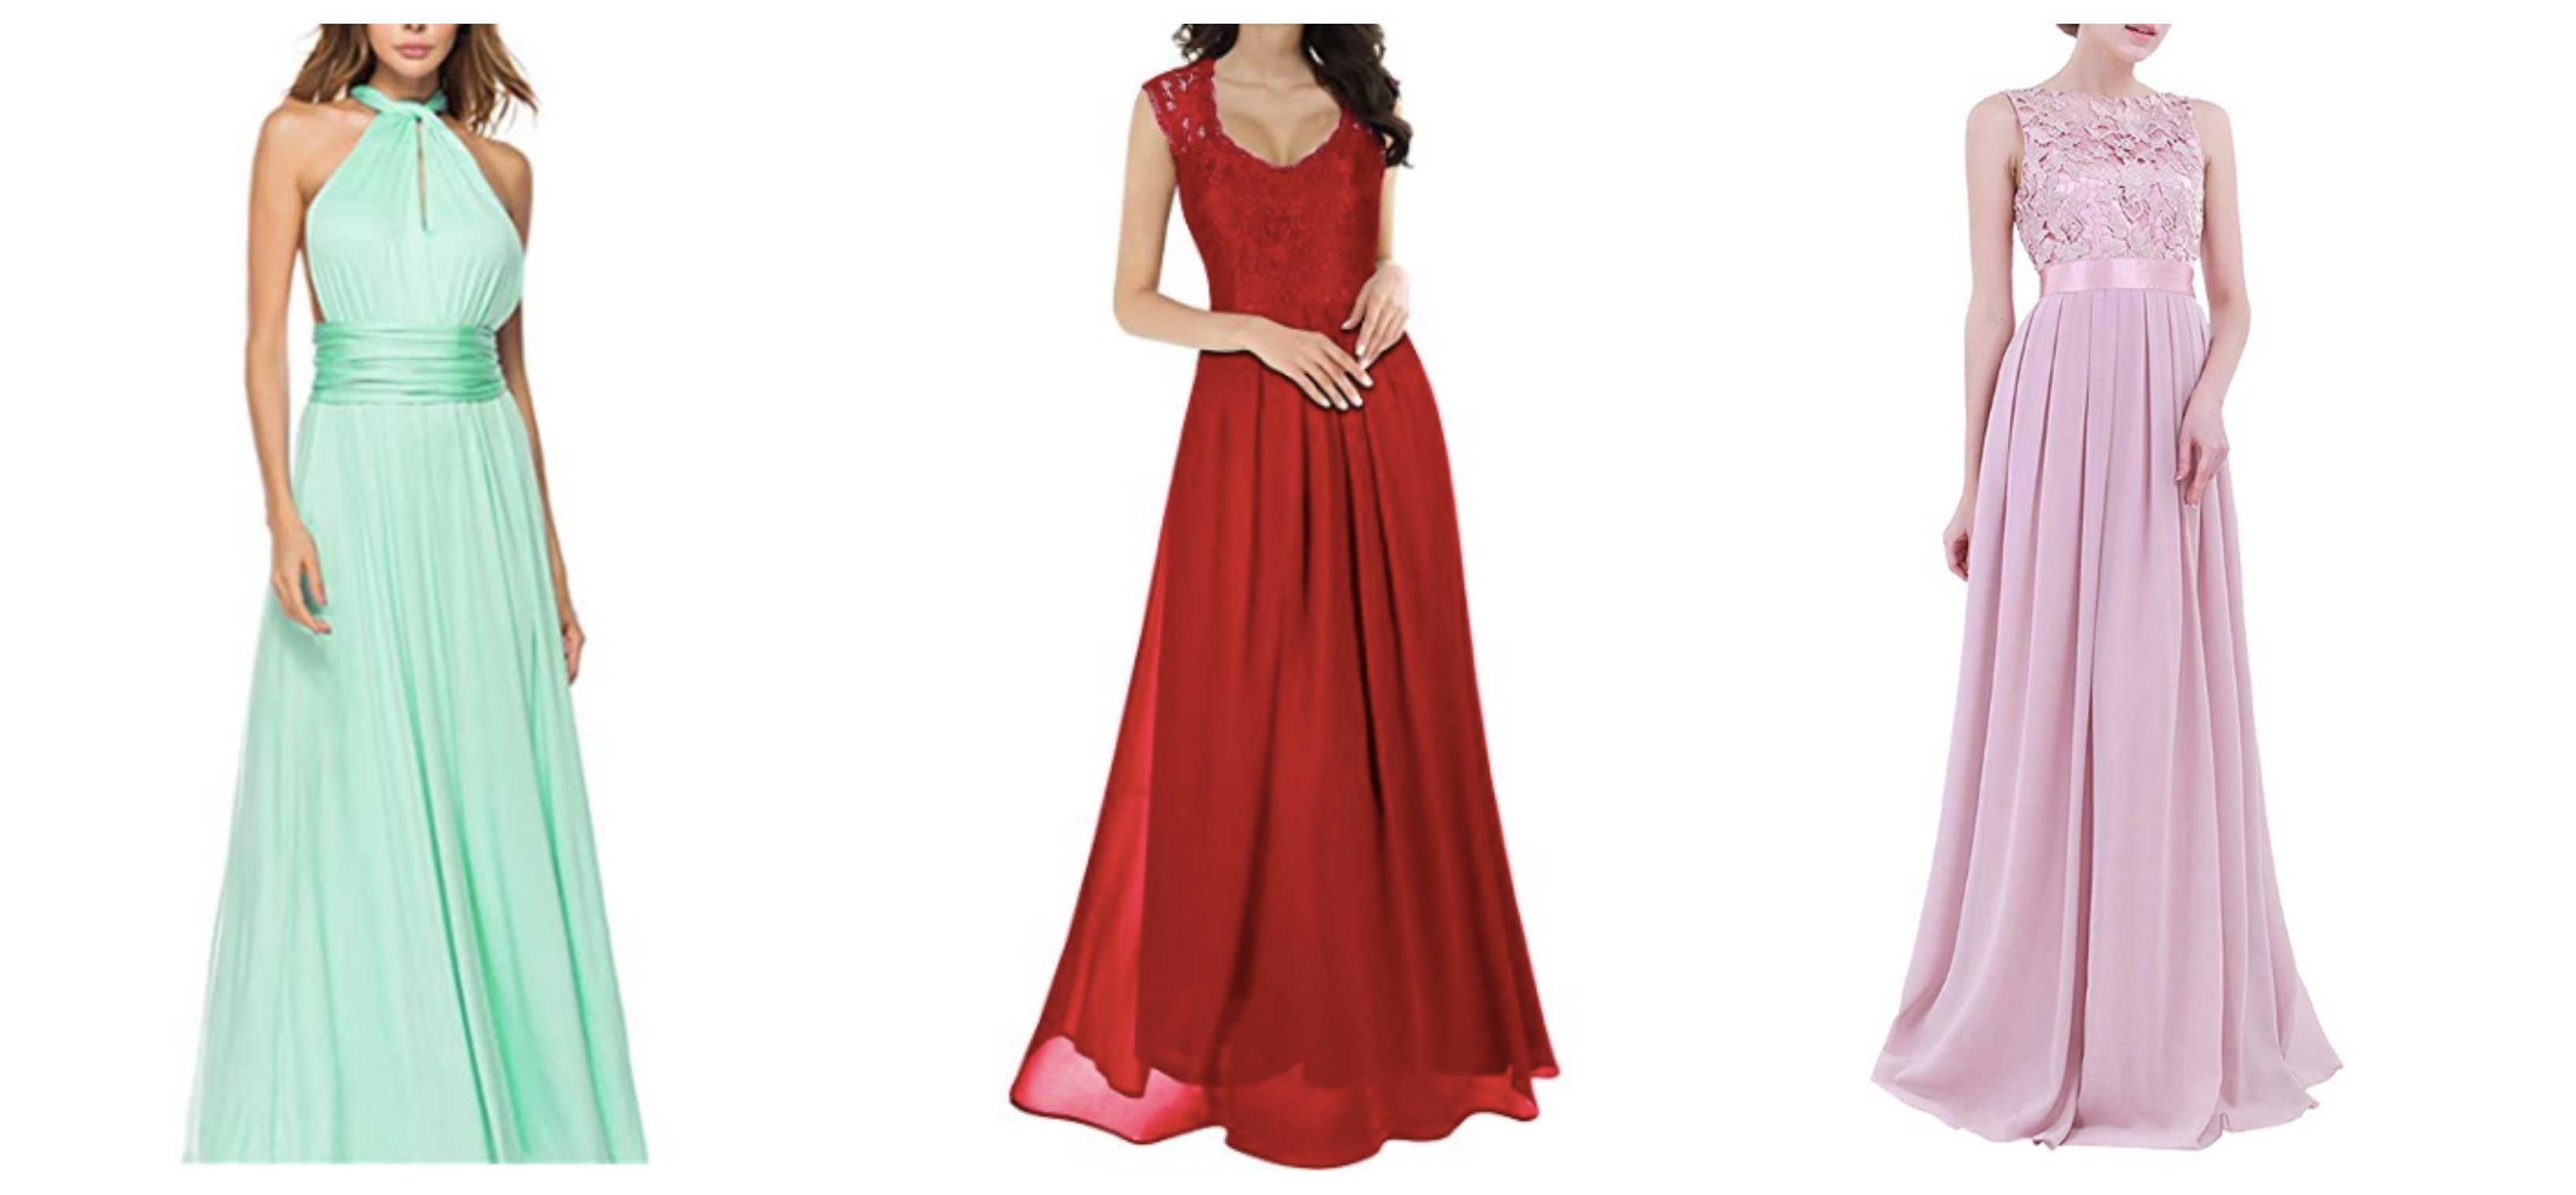 cunard dress code bridesmaid dresses formal nights